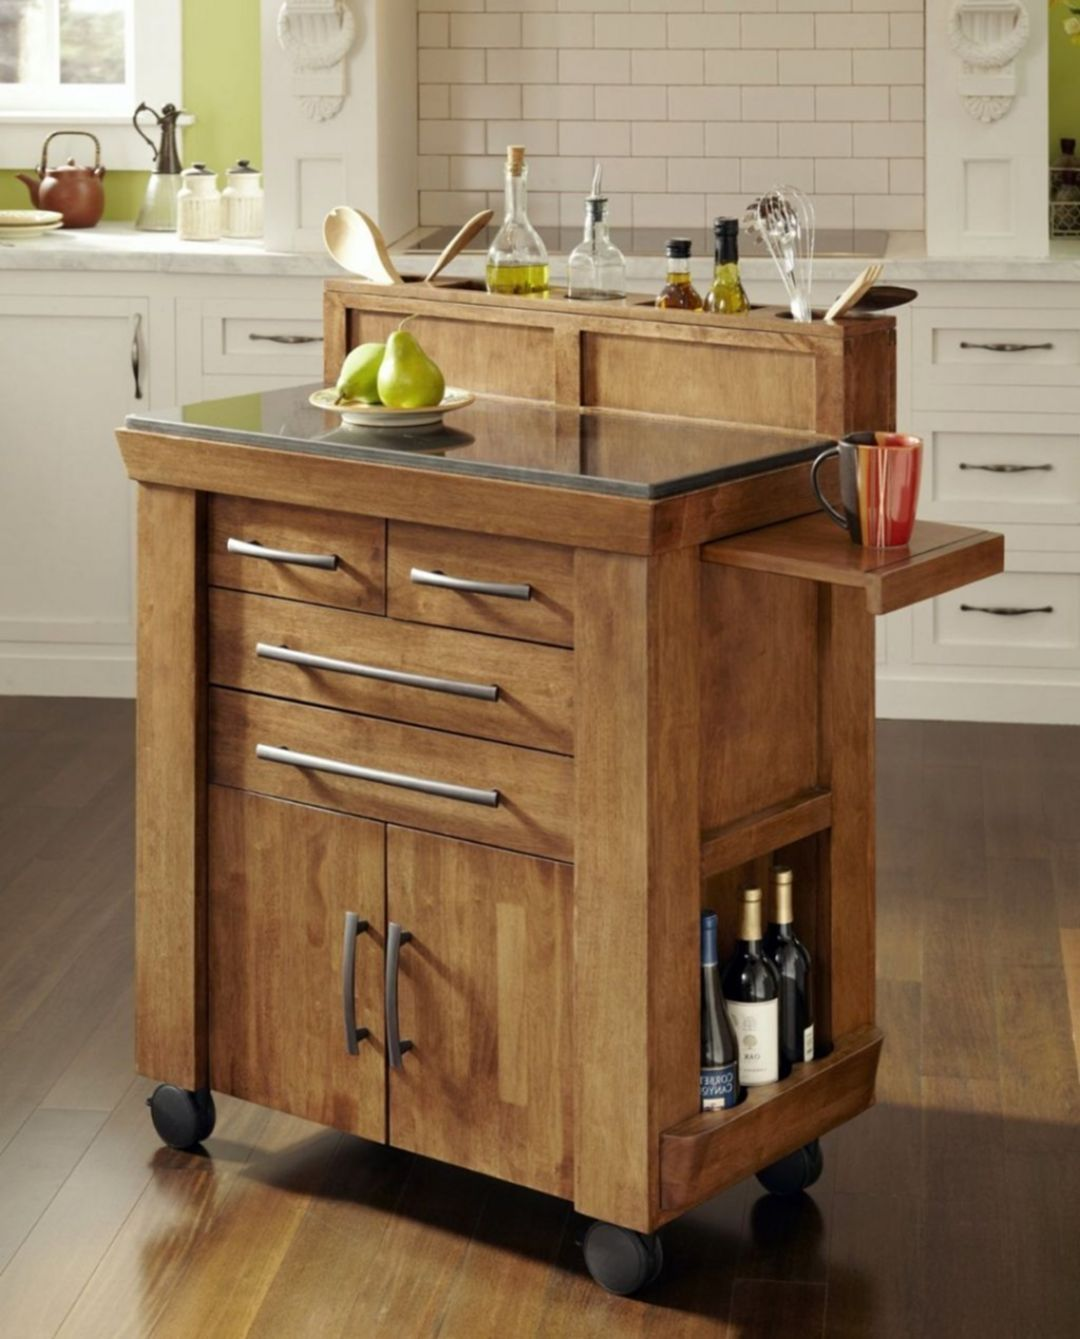 Decorating Smallspace Kitchen: 15 Fabulous Kitchen Island Decorating Ideas To Become A